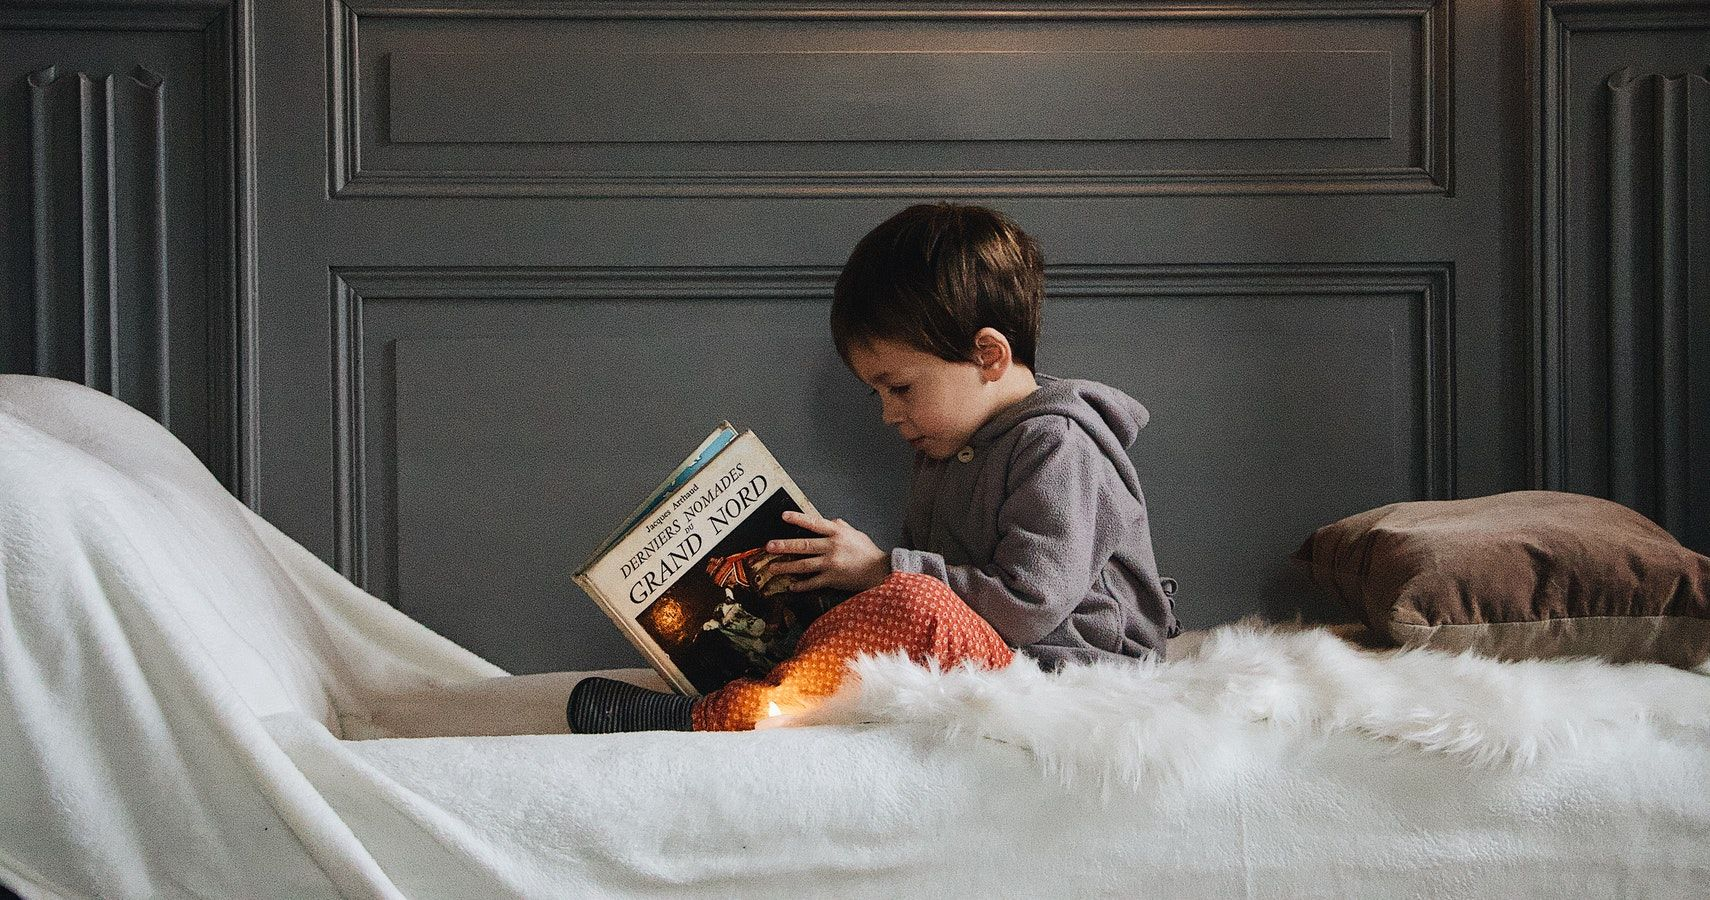 7 Books To Add To Your Child's Shelf During National Book Month